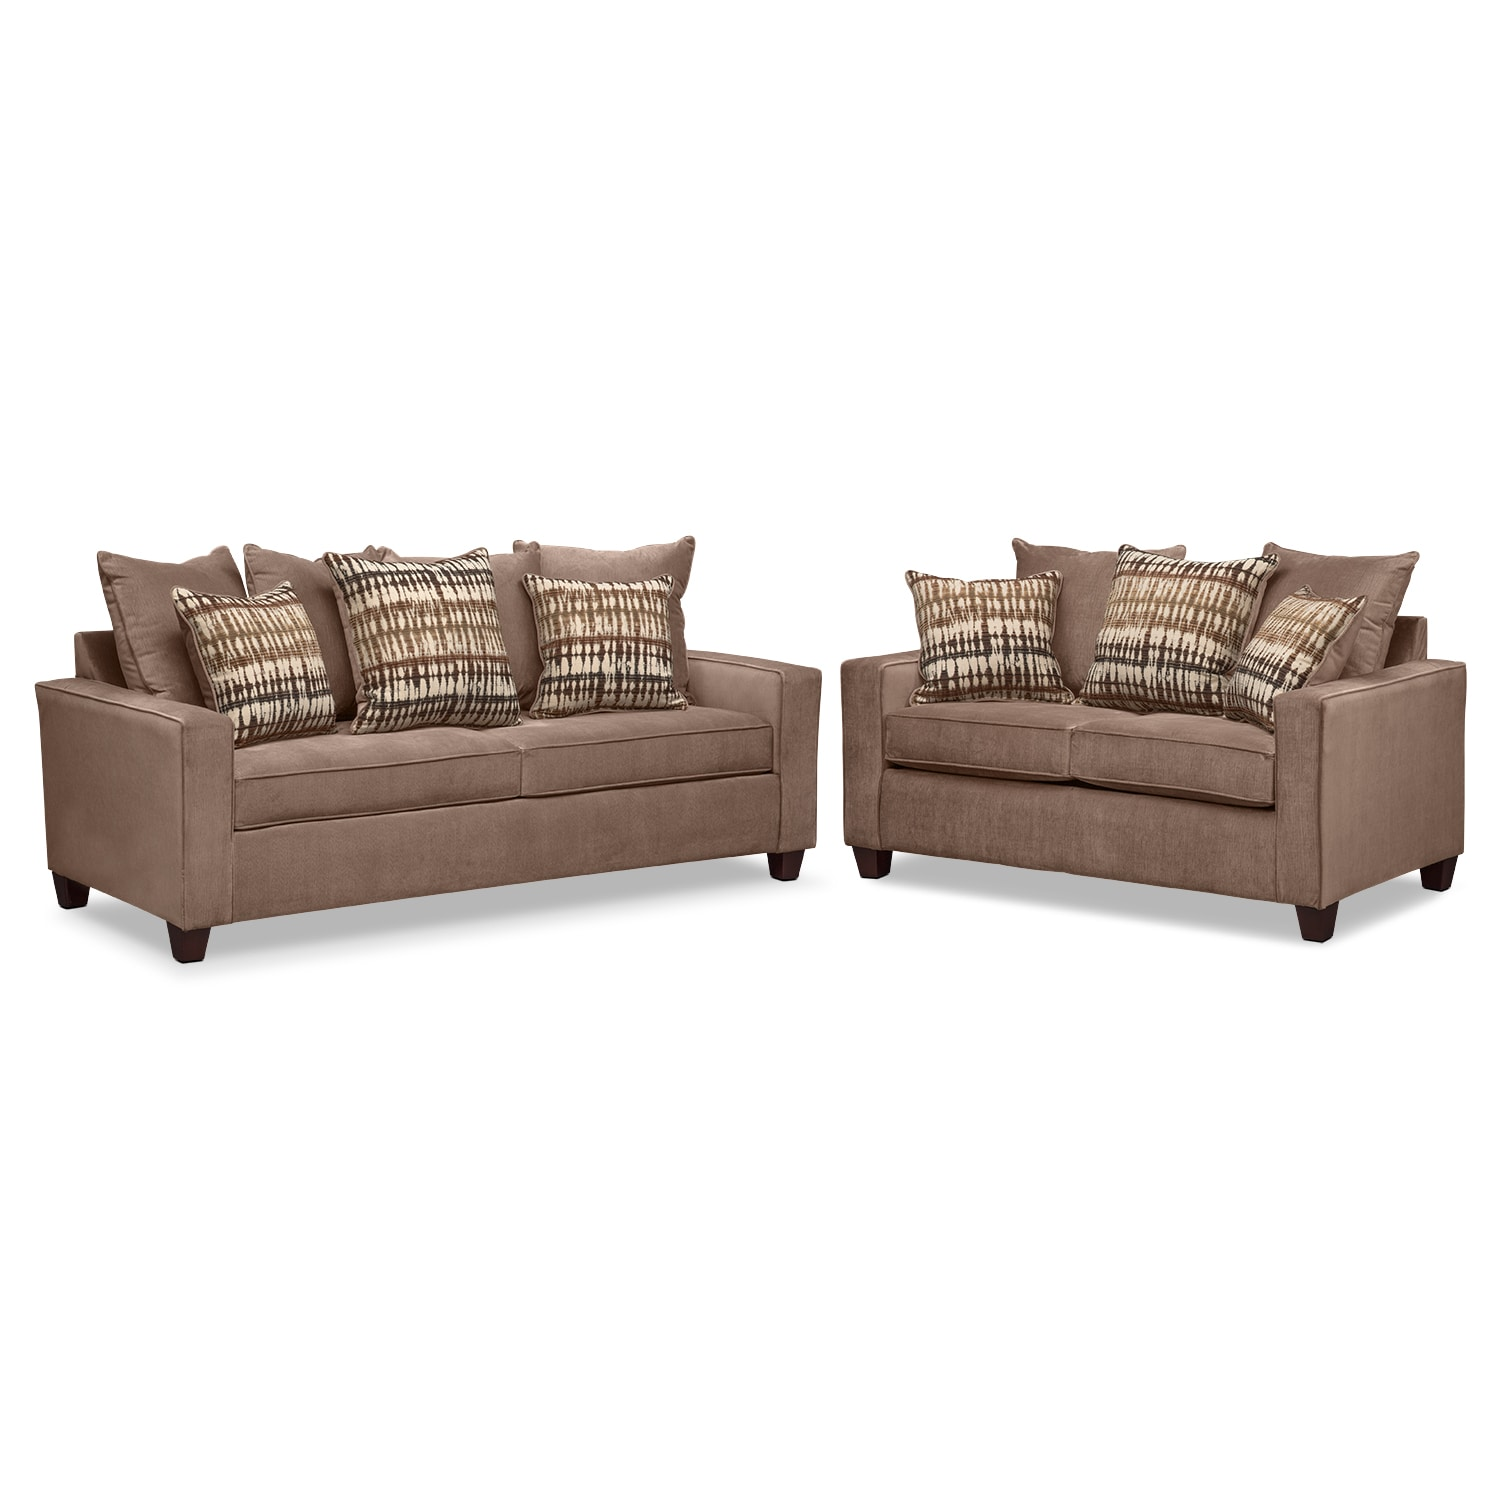 Bryden Queen Memory Foam Sleeper Sofa and Loveseat Set - Chocolate